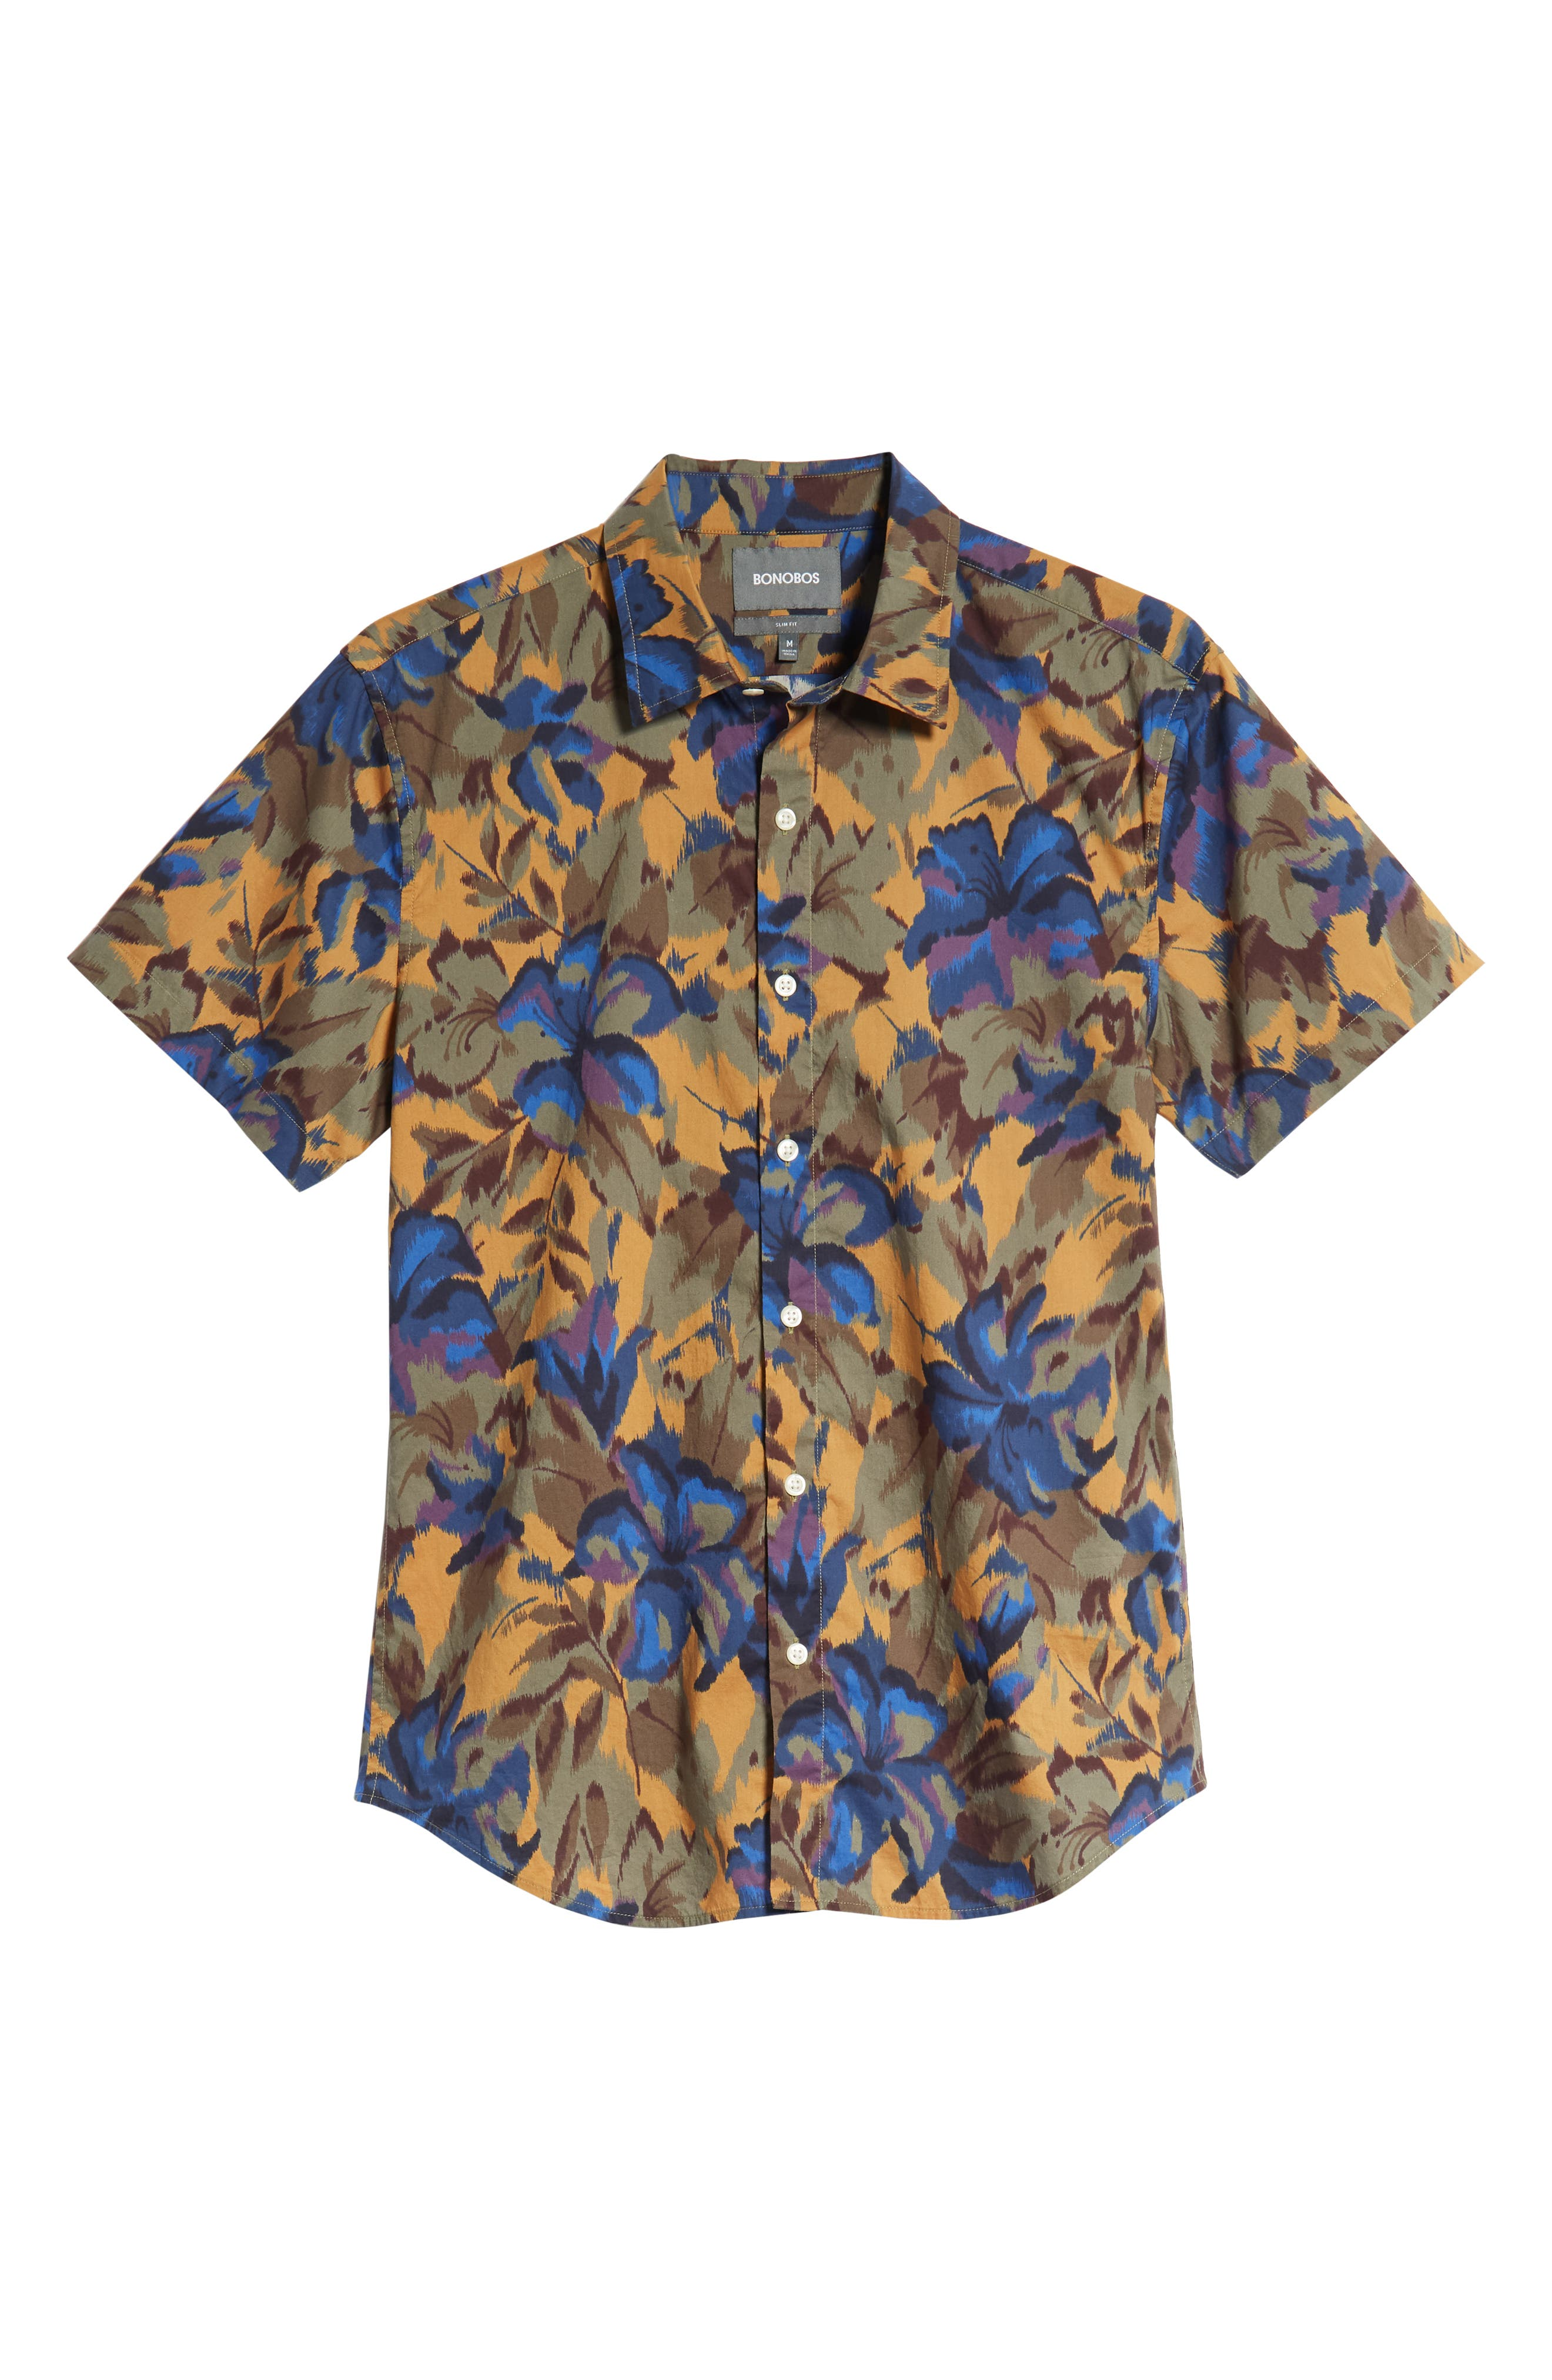 Riviera Slim Fit Sport Shirt,                             Alternate thumbnail 5, color,                             FADED FLORAL - AMBER TOPAZ